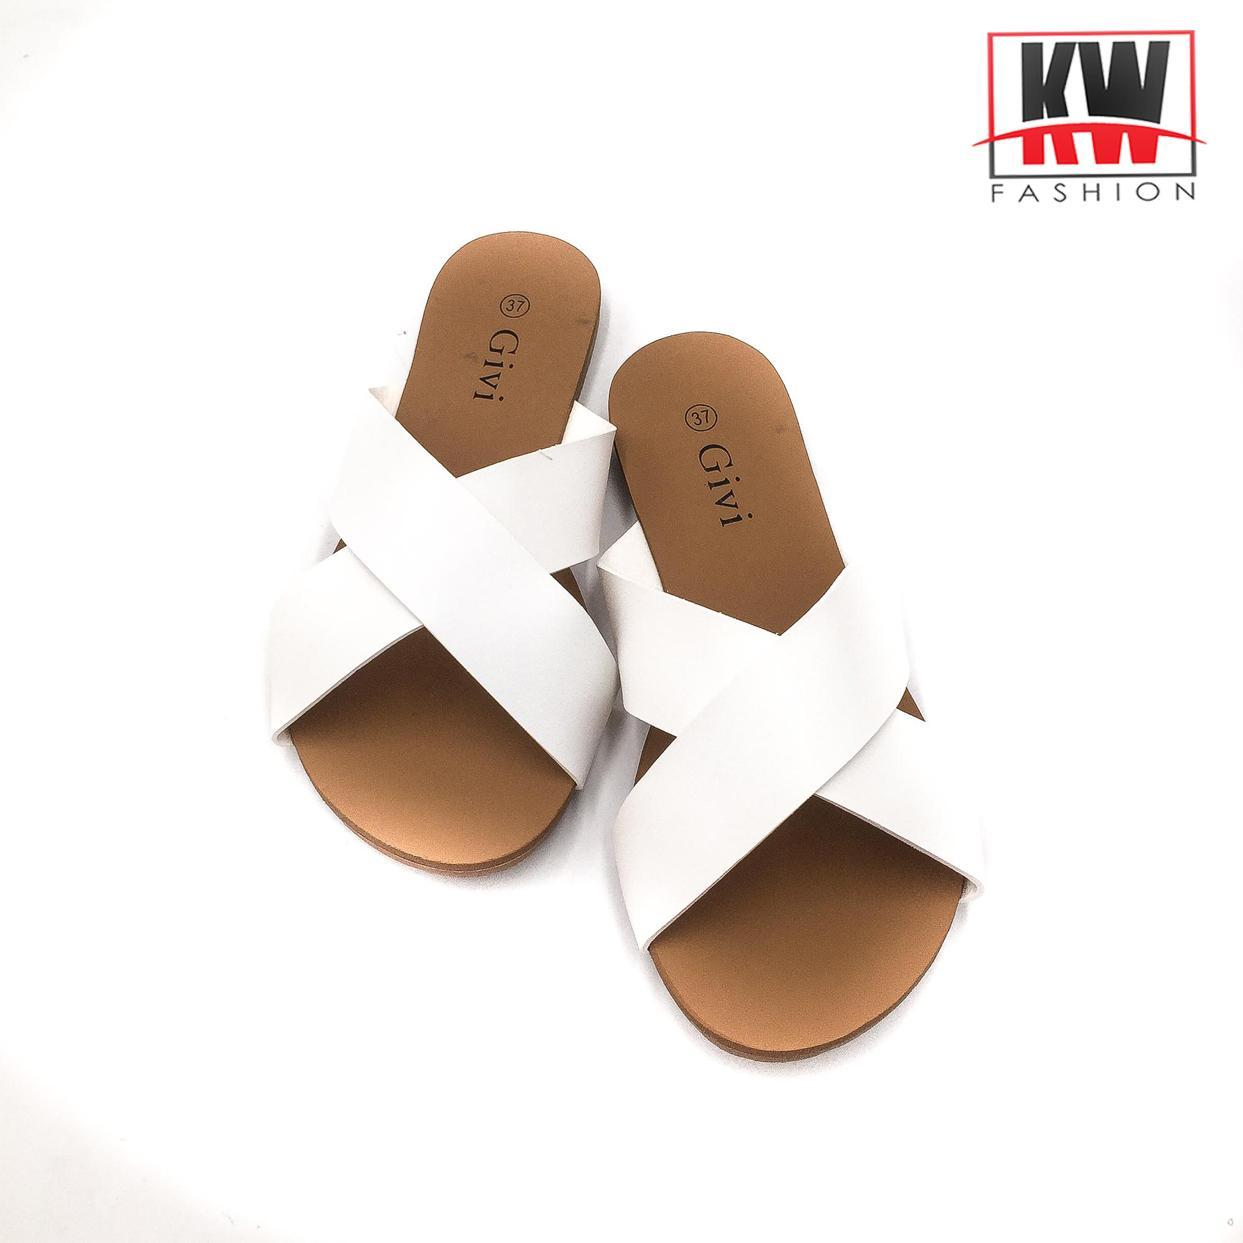 029630d794c9 Womens Sandals for sale - Ladies Sandals online brands